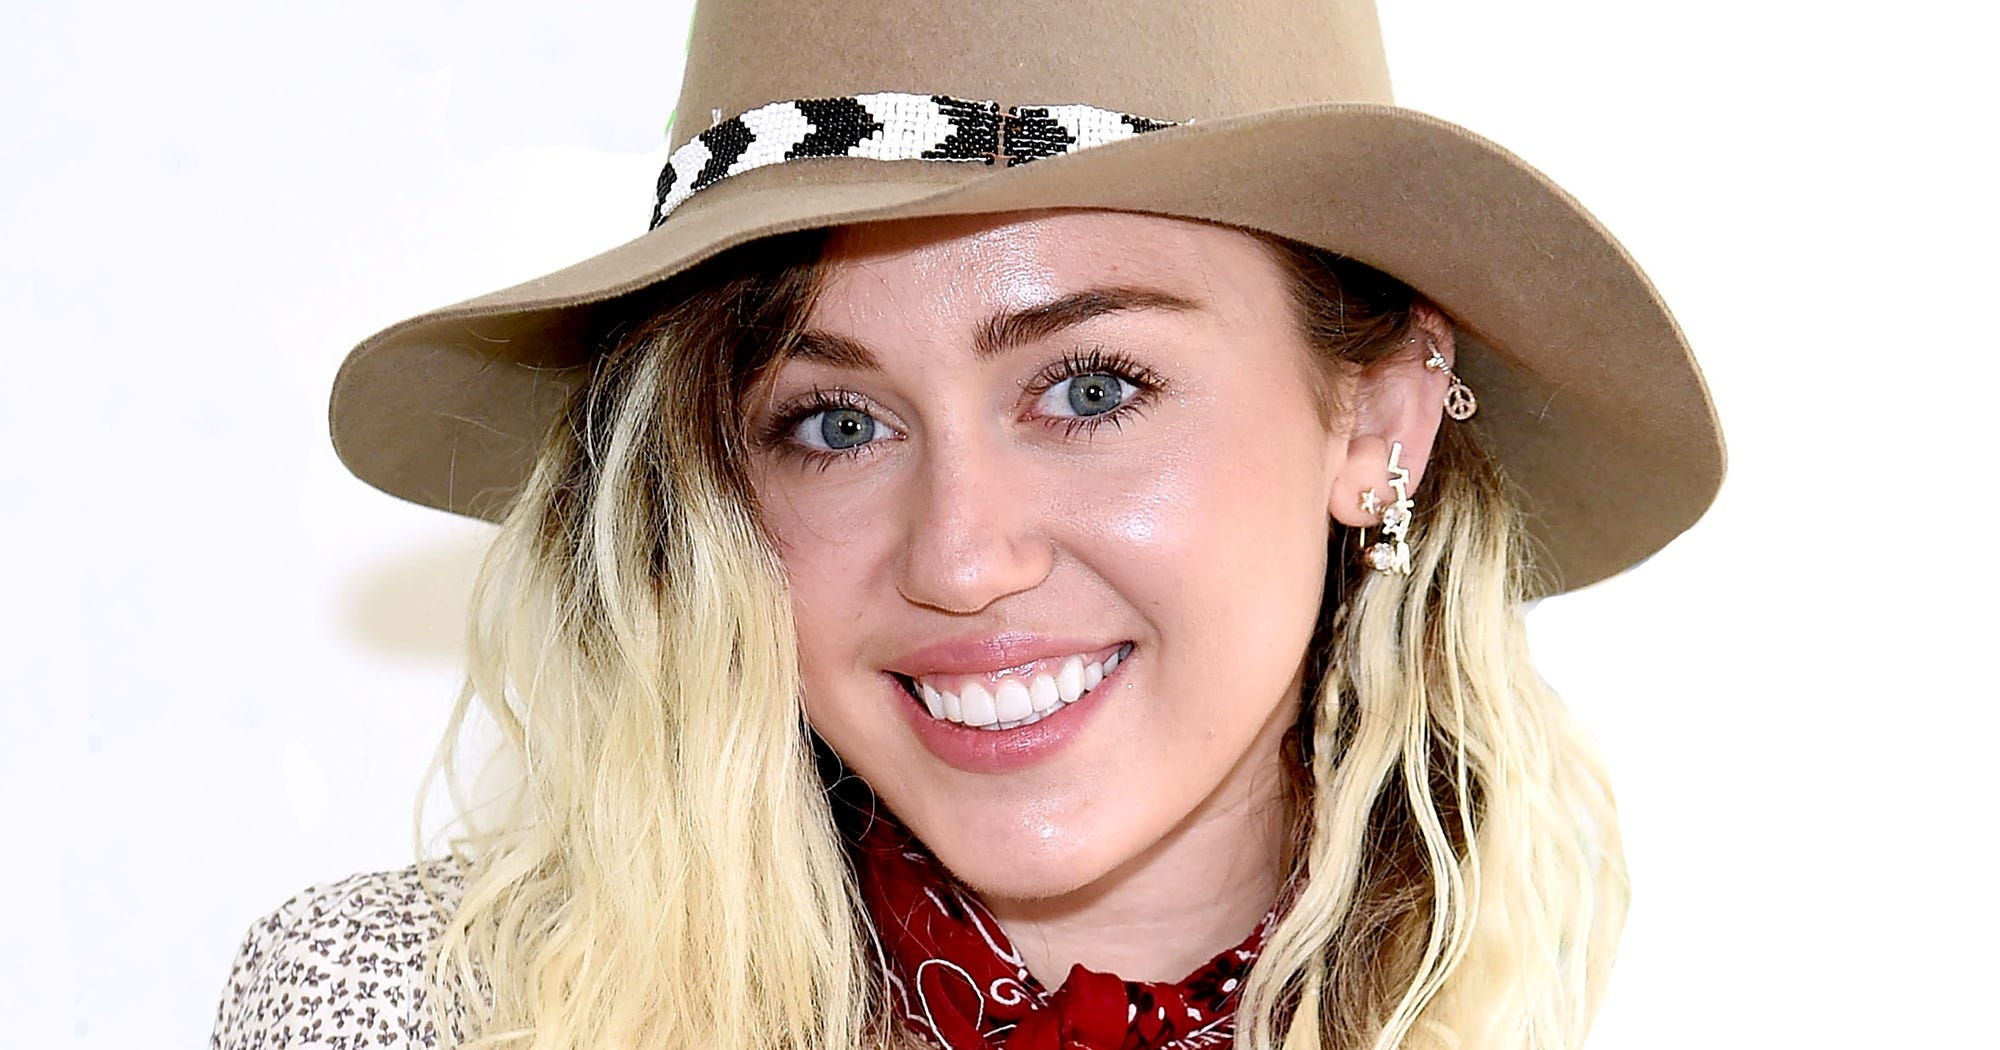 Miley Cyrus Regrets Wrecking Ball Song, New Style 2017-7556